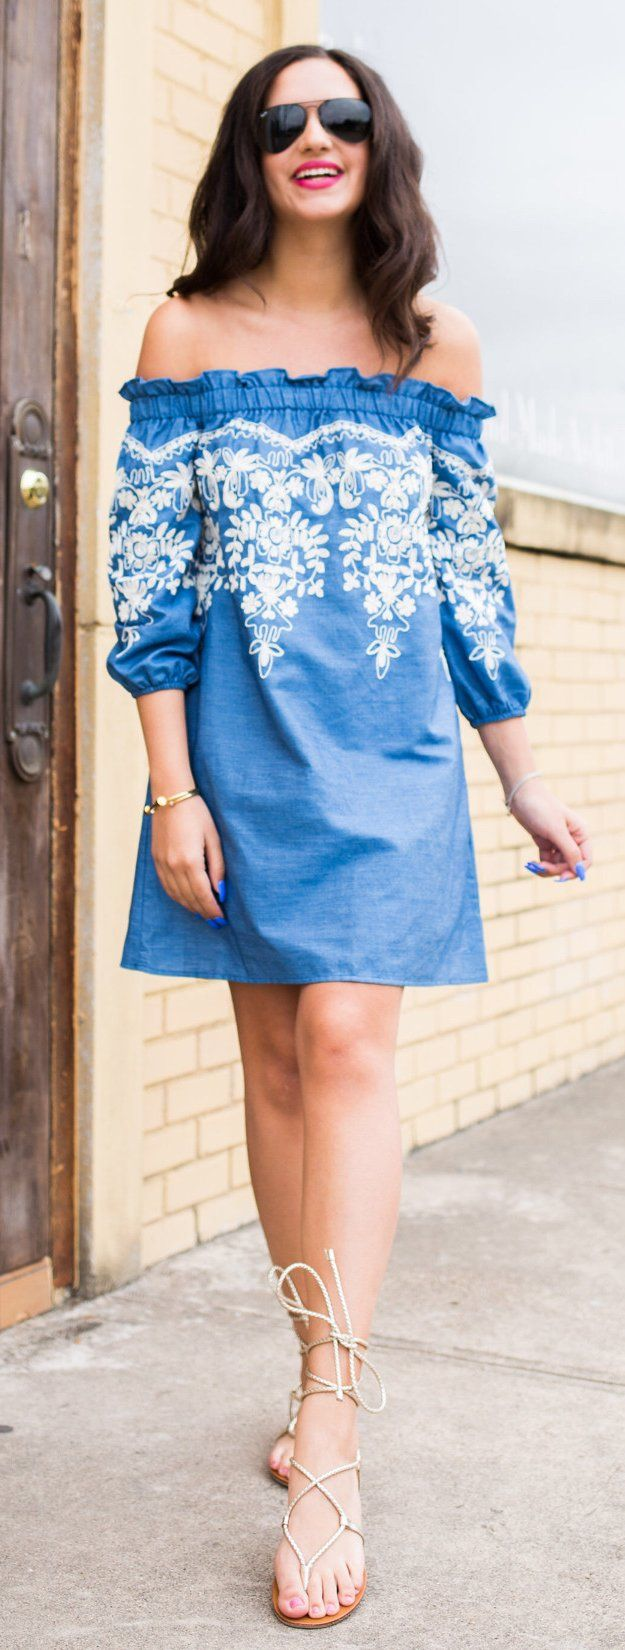 384 best summer outfits images on pinterest | friends, retro style